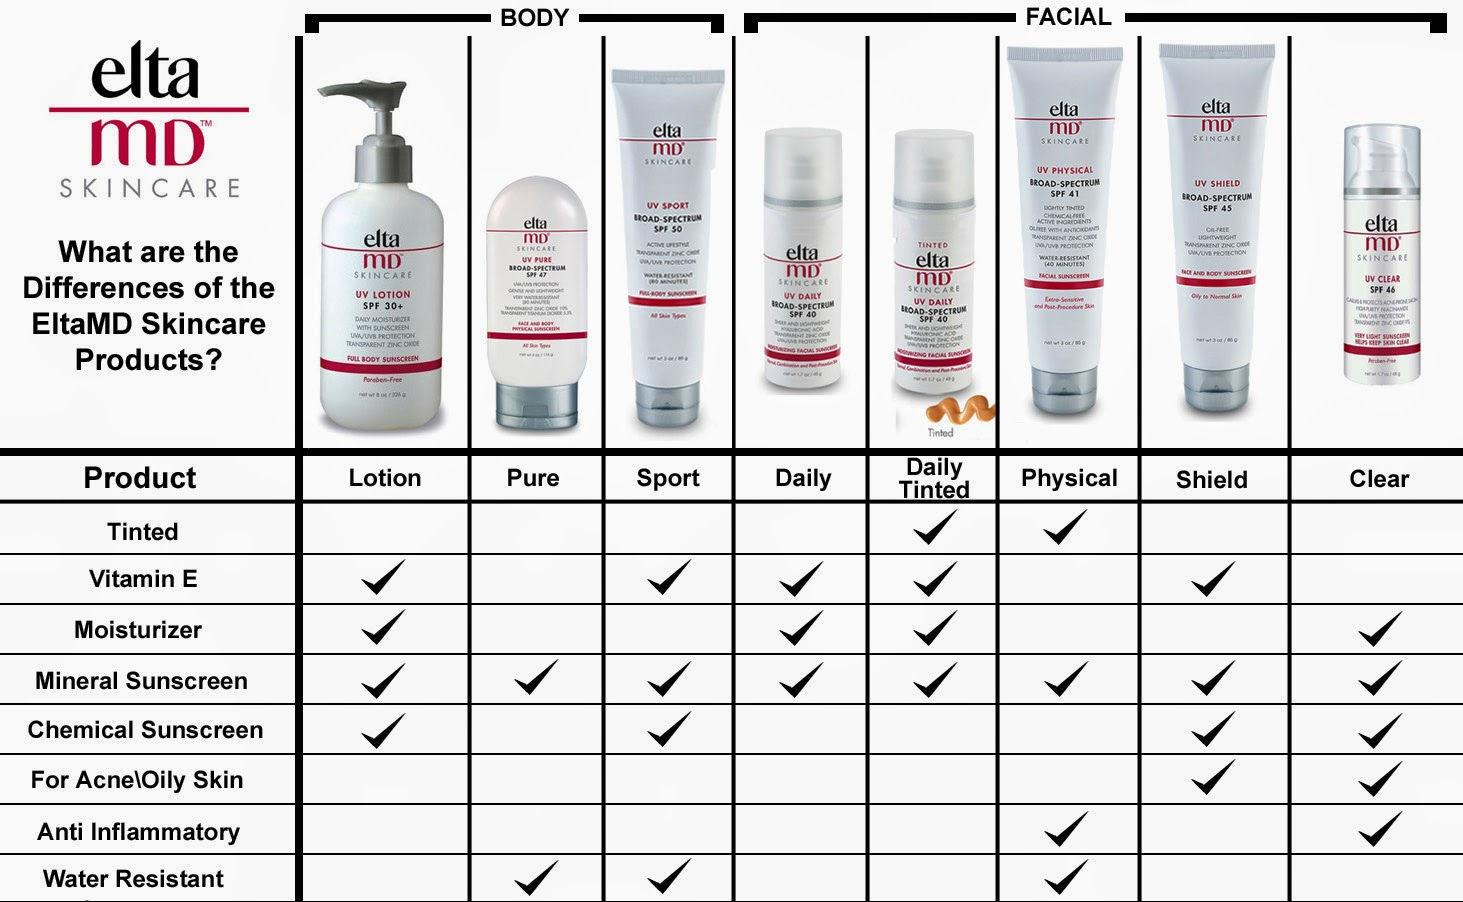 differences_of_Elta_MD_products.jpg